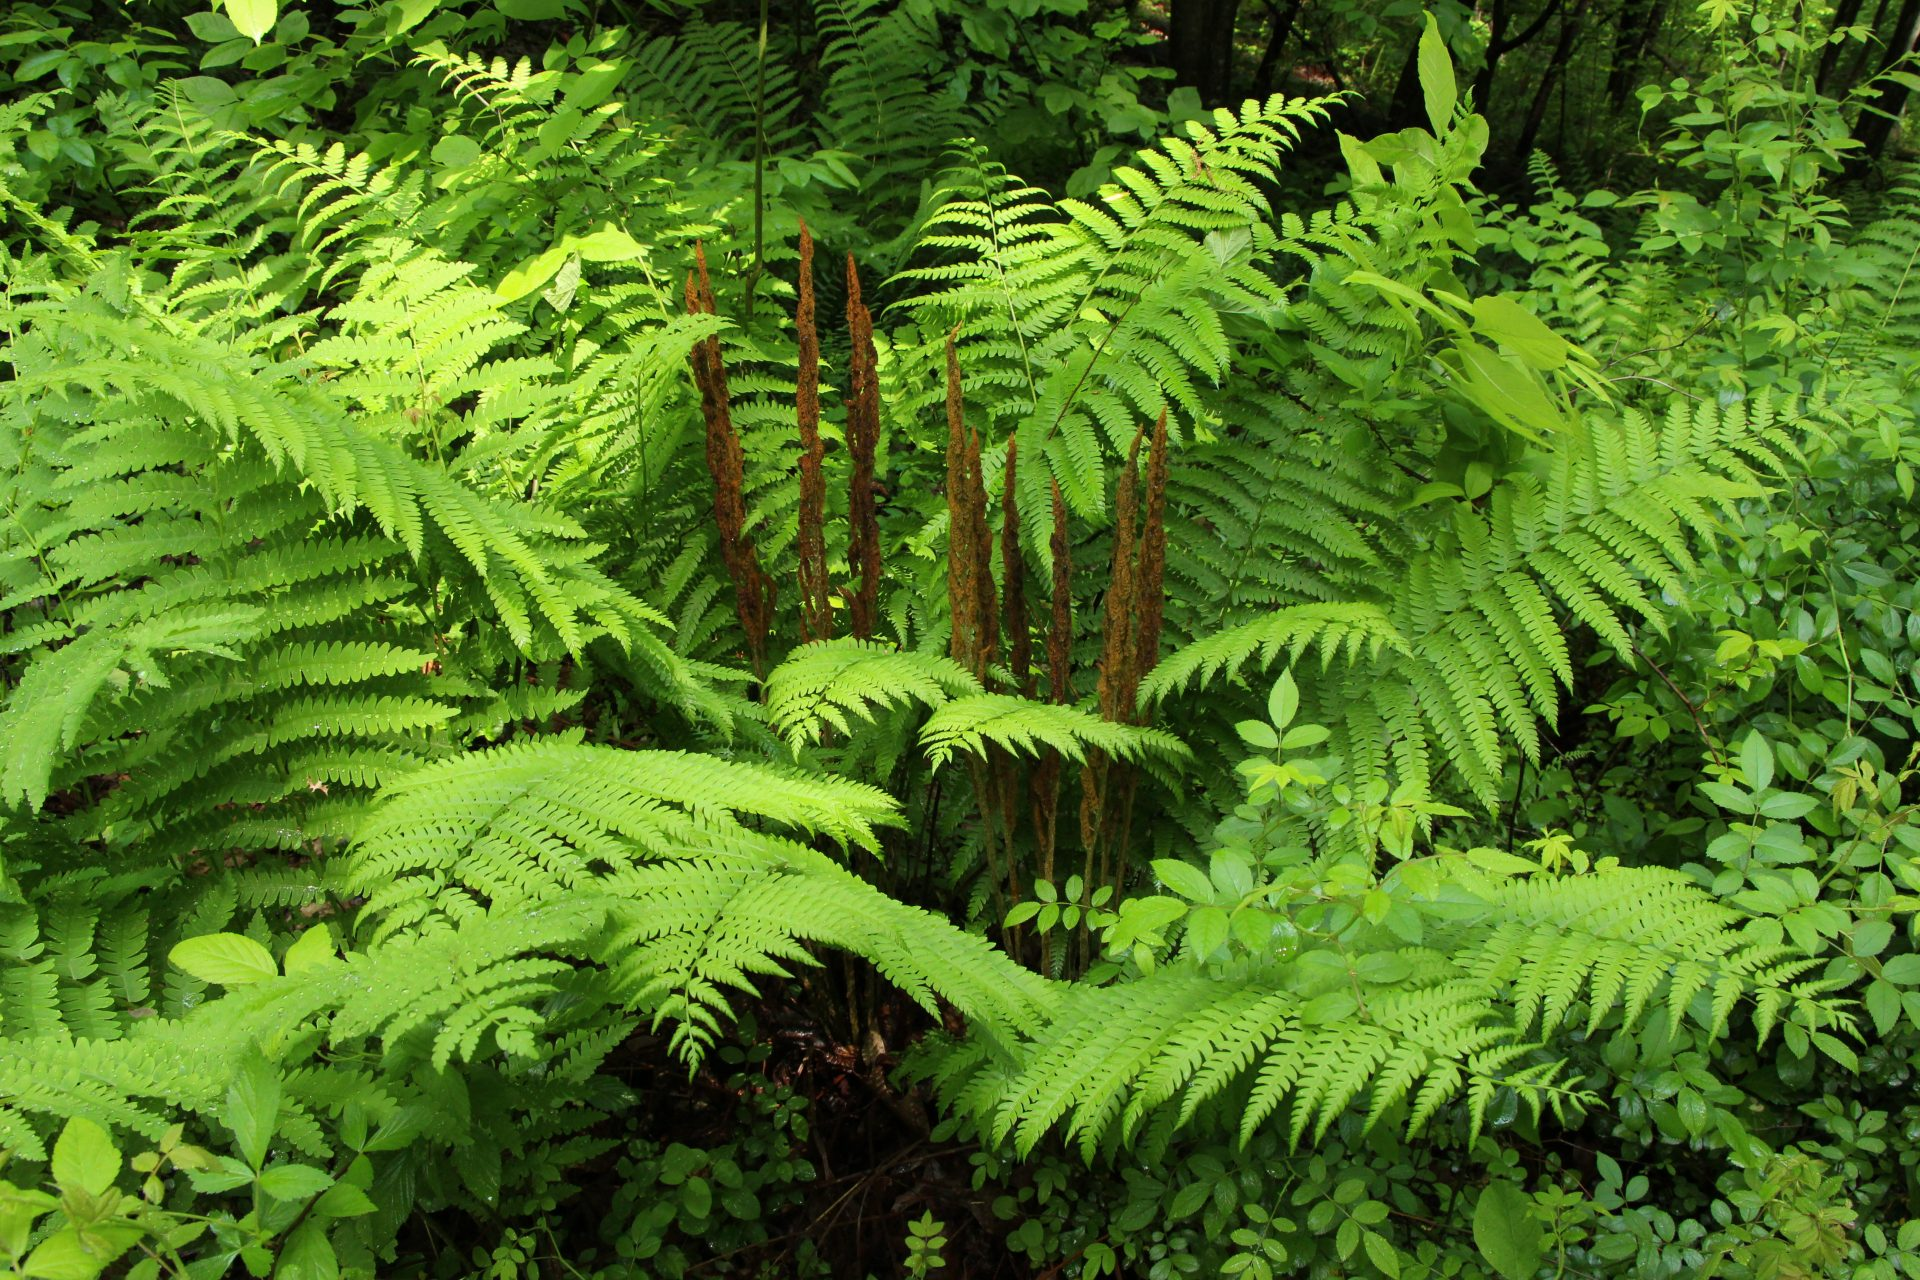 Cinnamon Ferns in Fern Gully